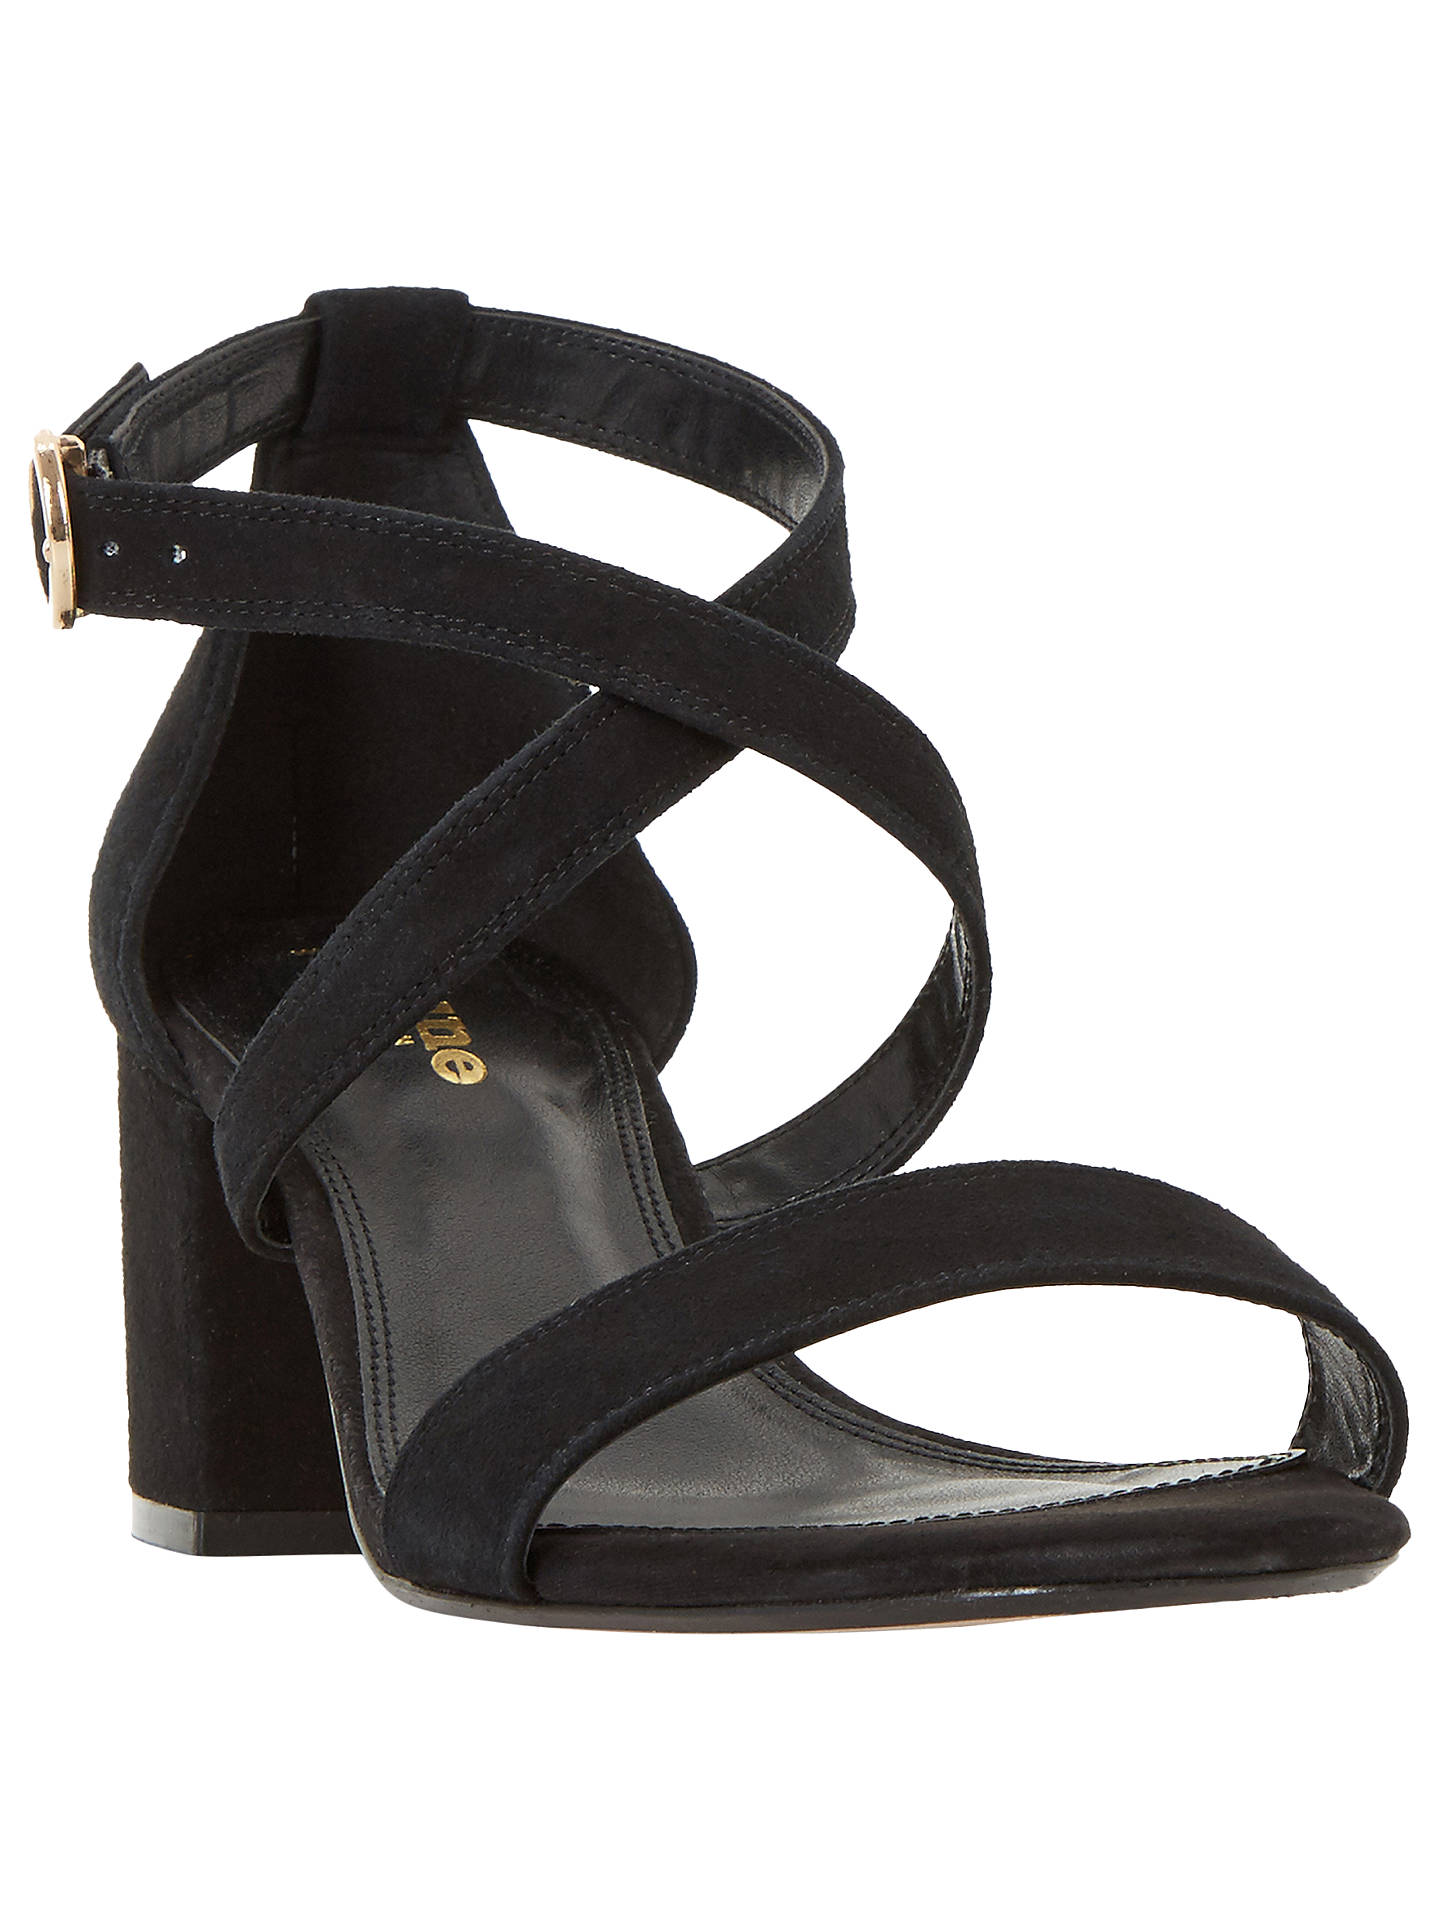 374e24226530 Dune Wide Fit Montie Cross Strap Block Heeled Sandals at John Lewis ...